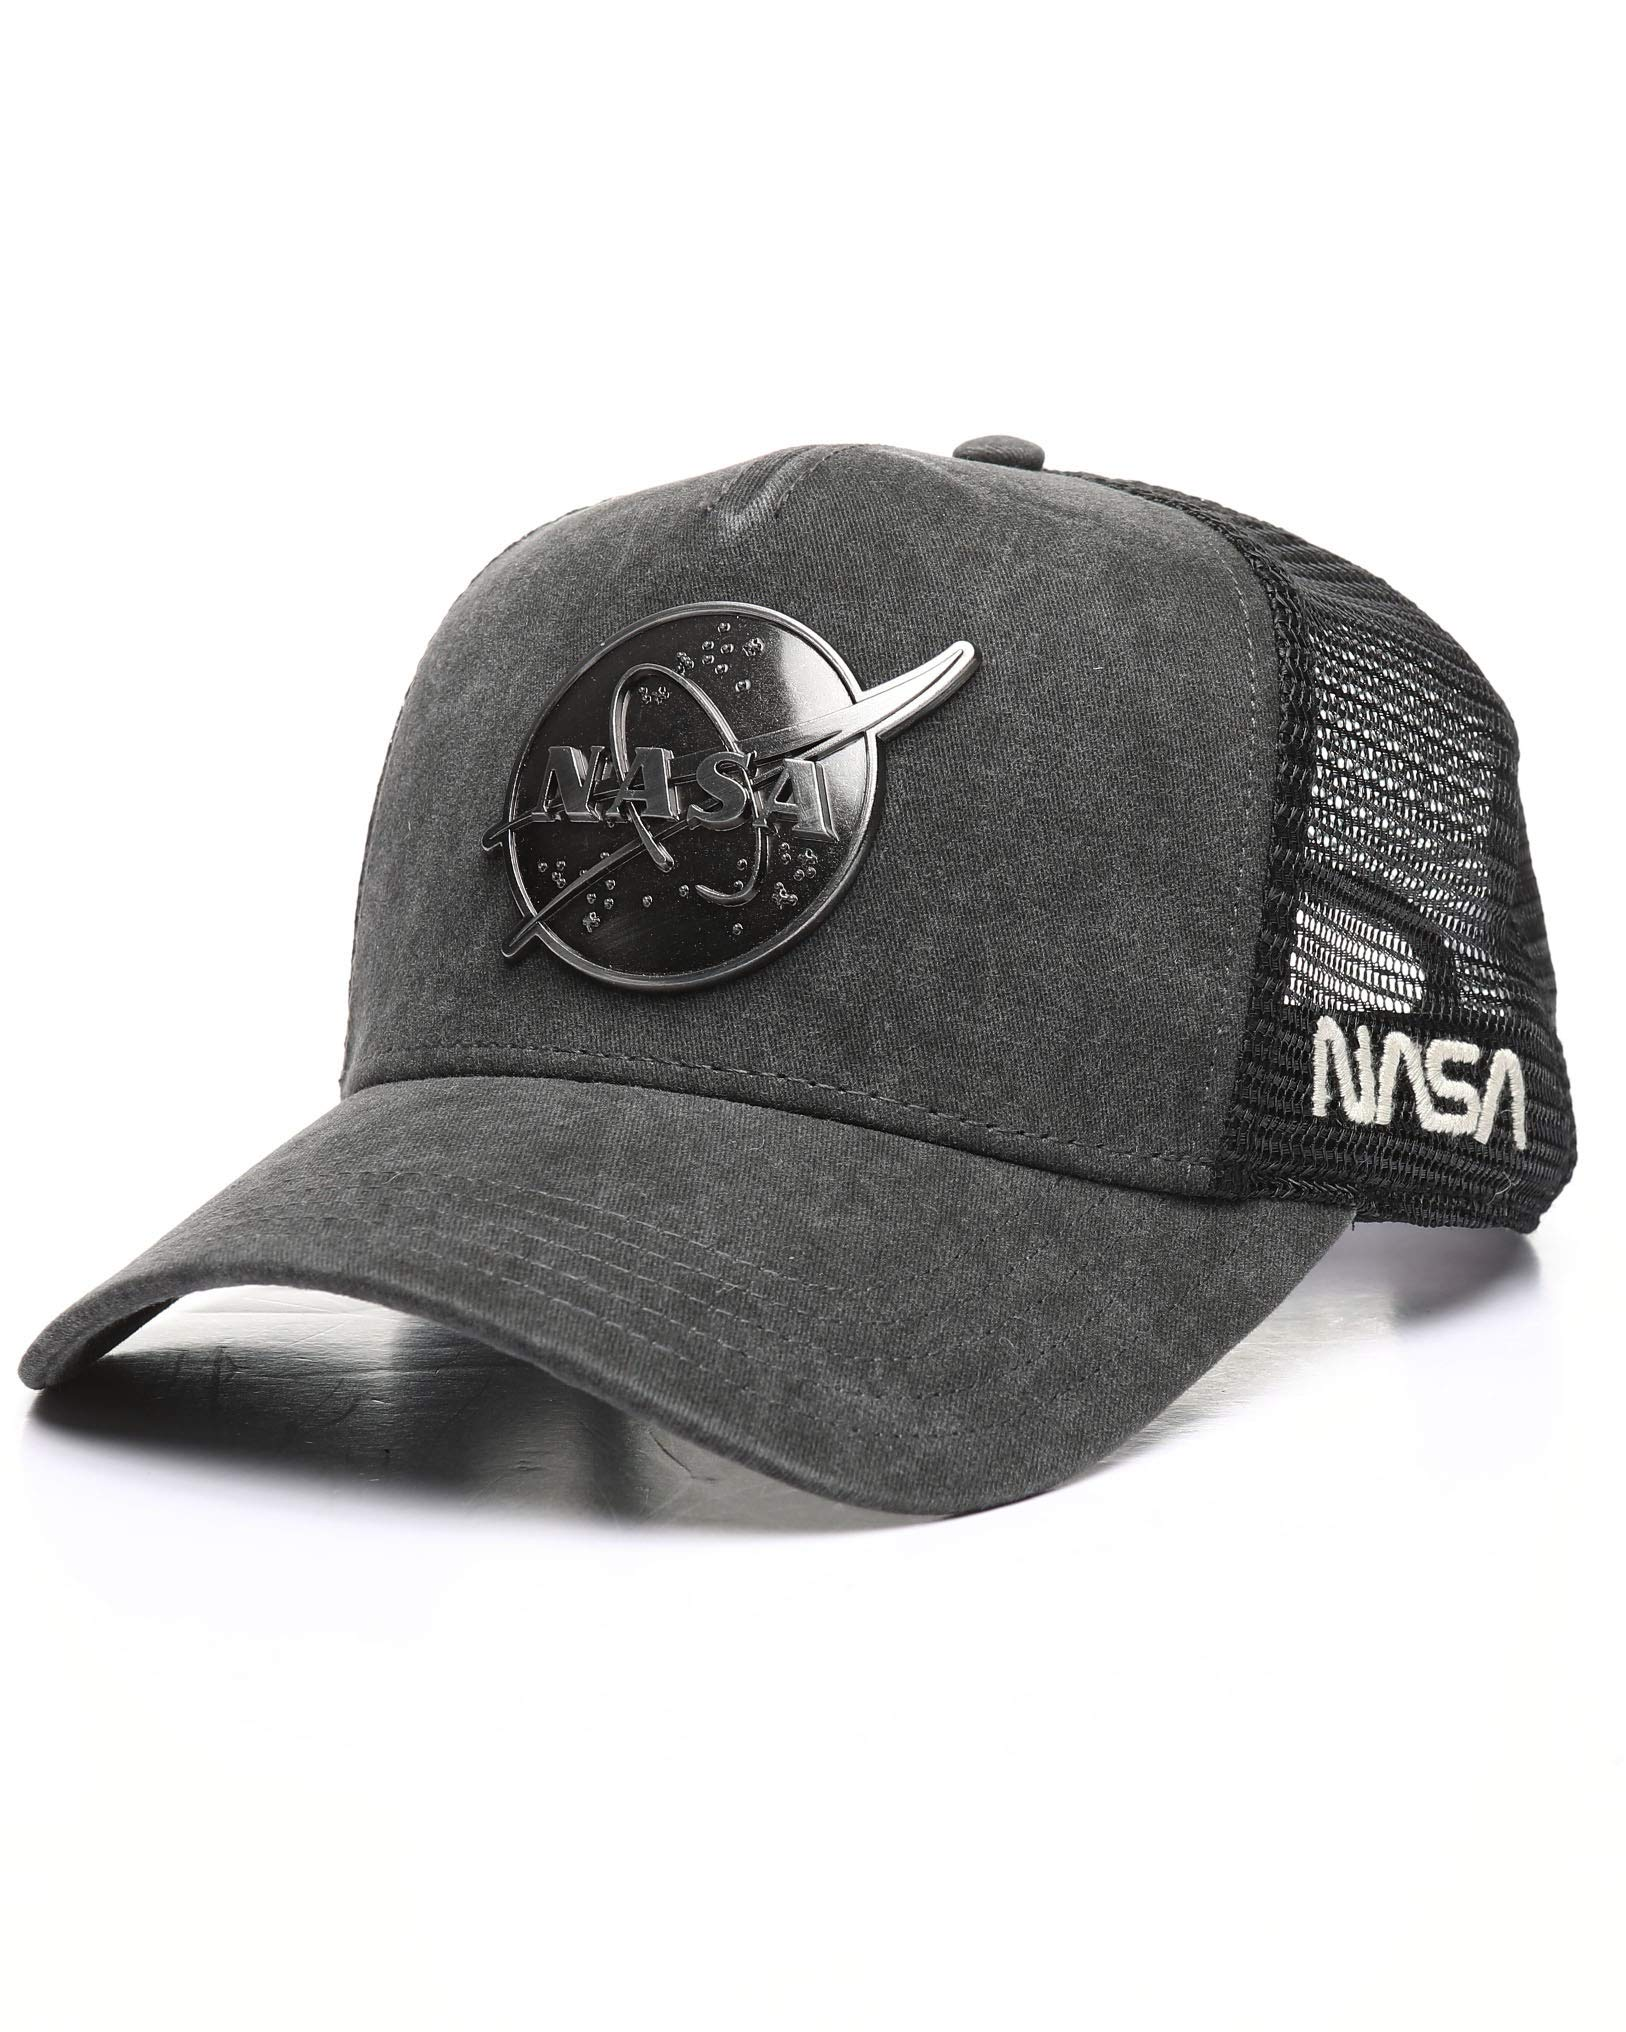 American Needle NASA Metal Head Mesh Back Adjustable Snapback Trucker Hat Black